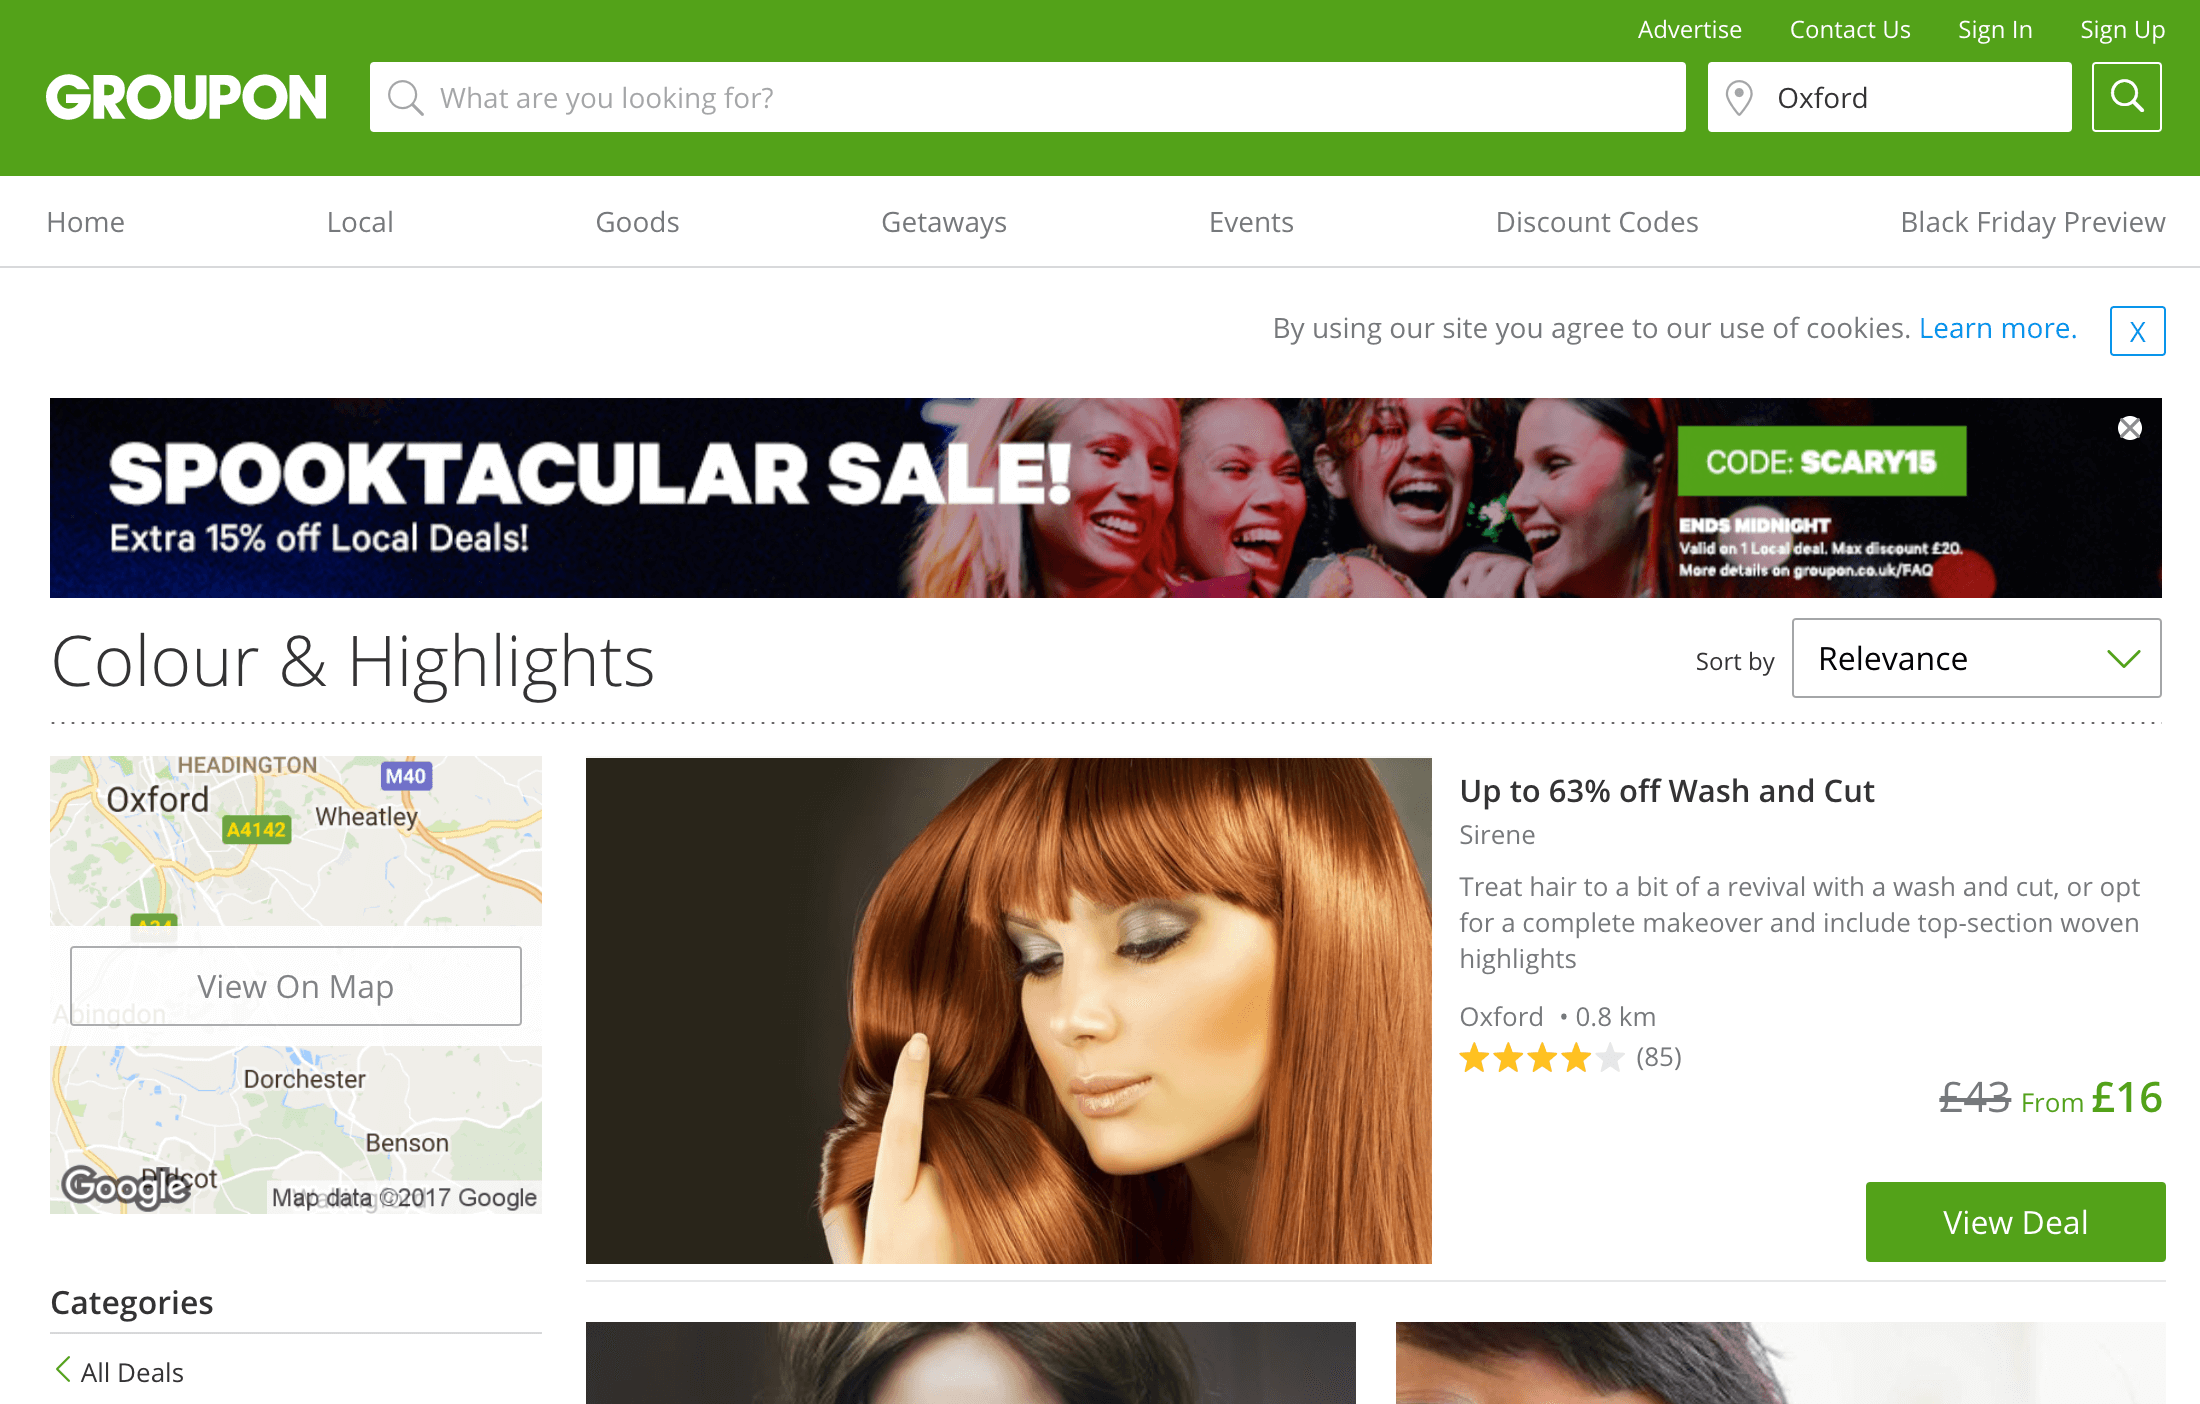 Groupon results for Oxford